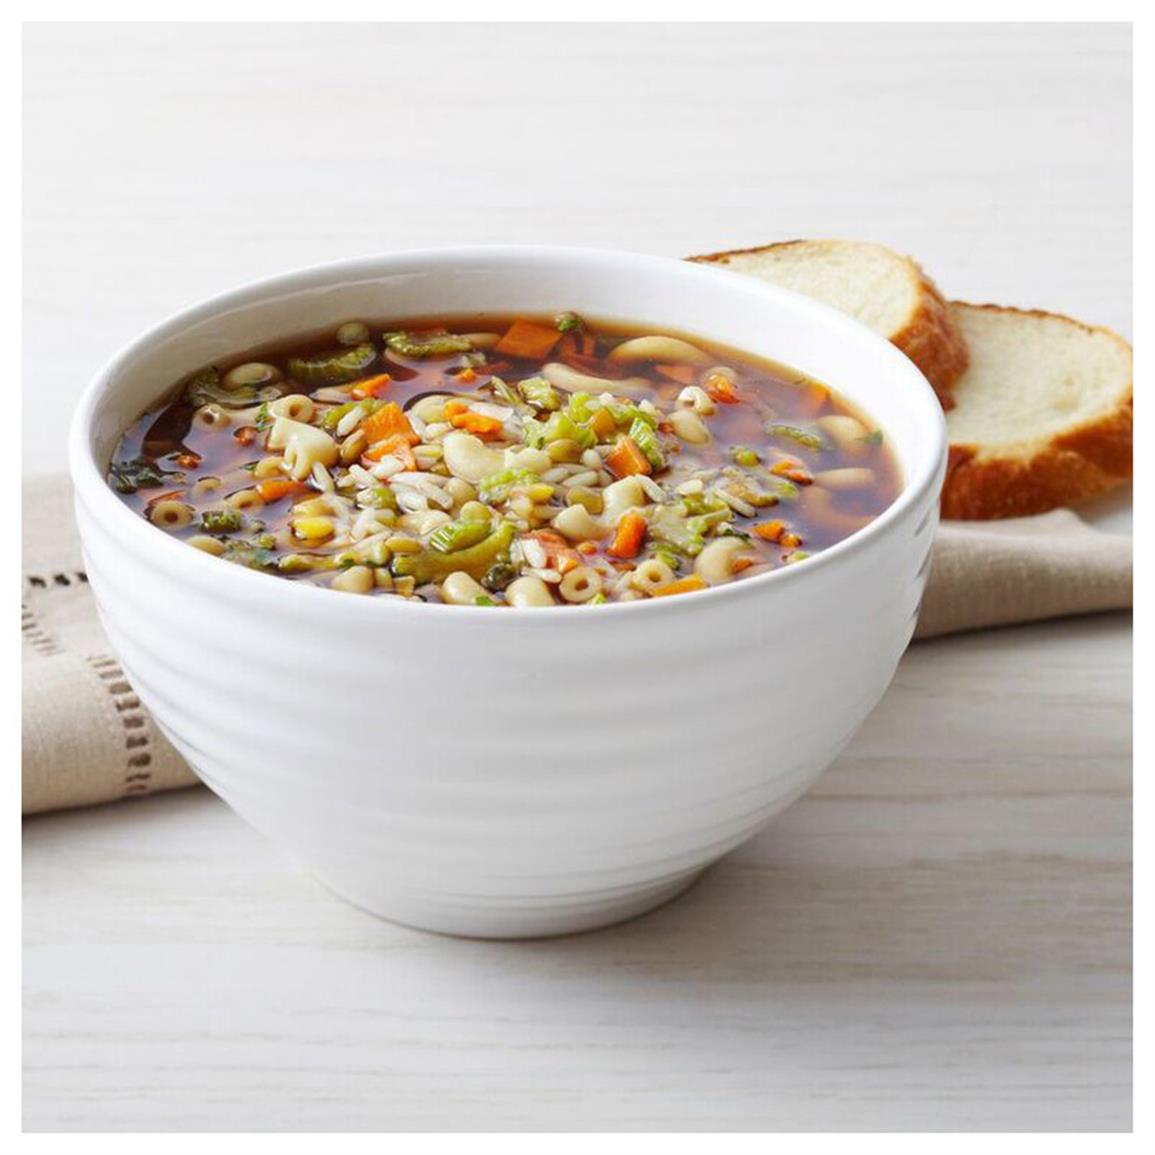 1 can Hearty Vegetable Beef Soup (21 servings)